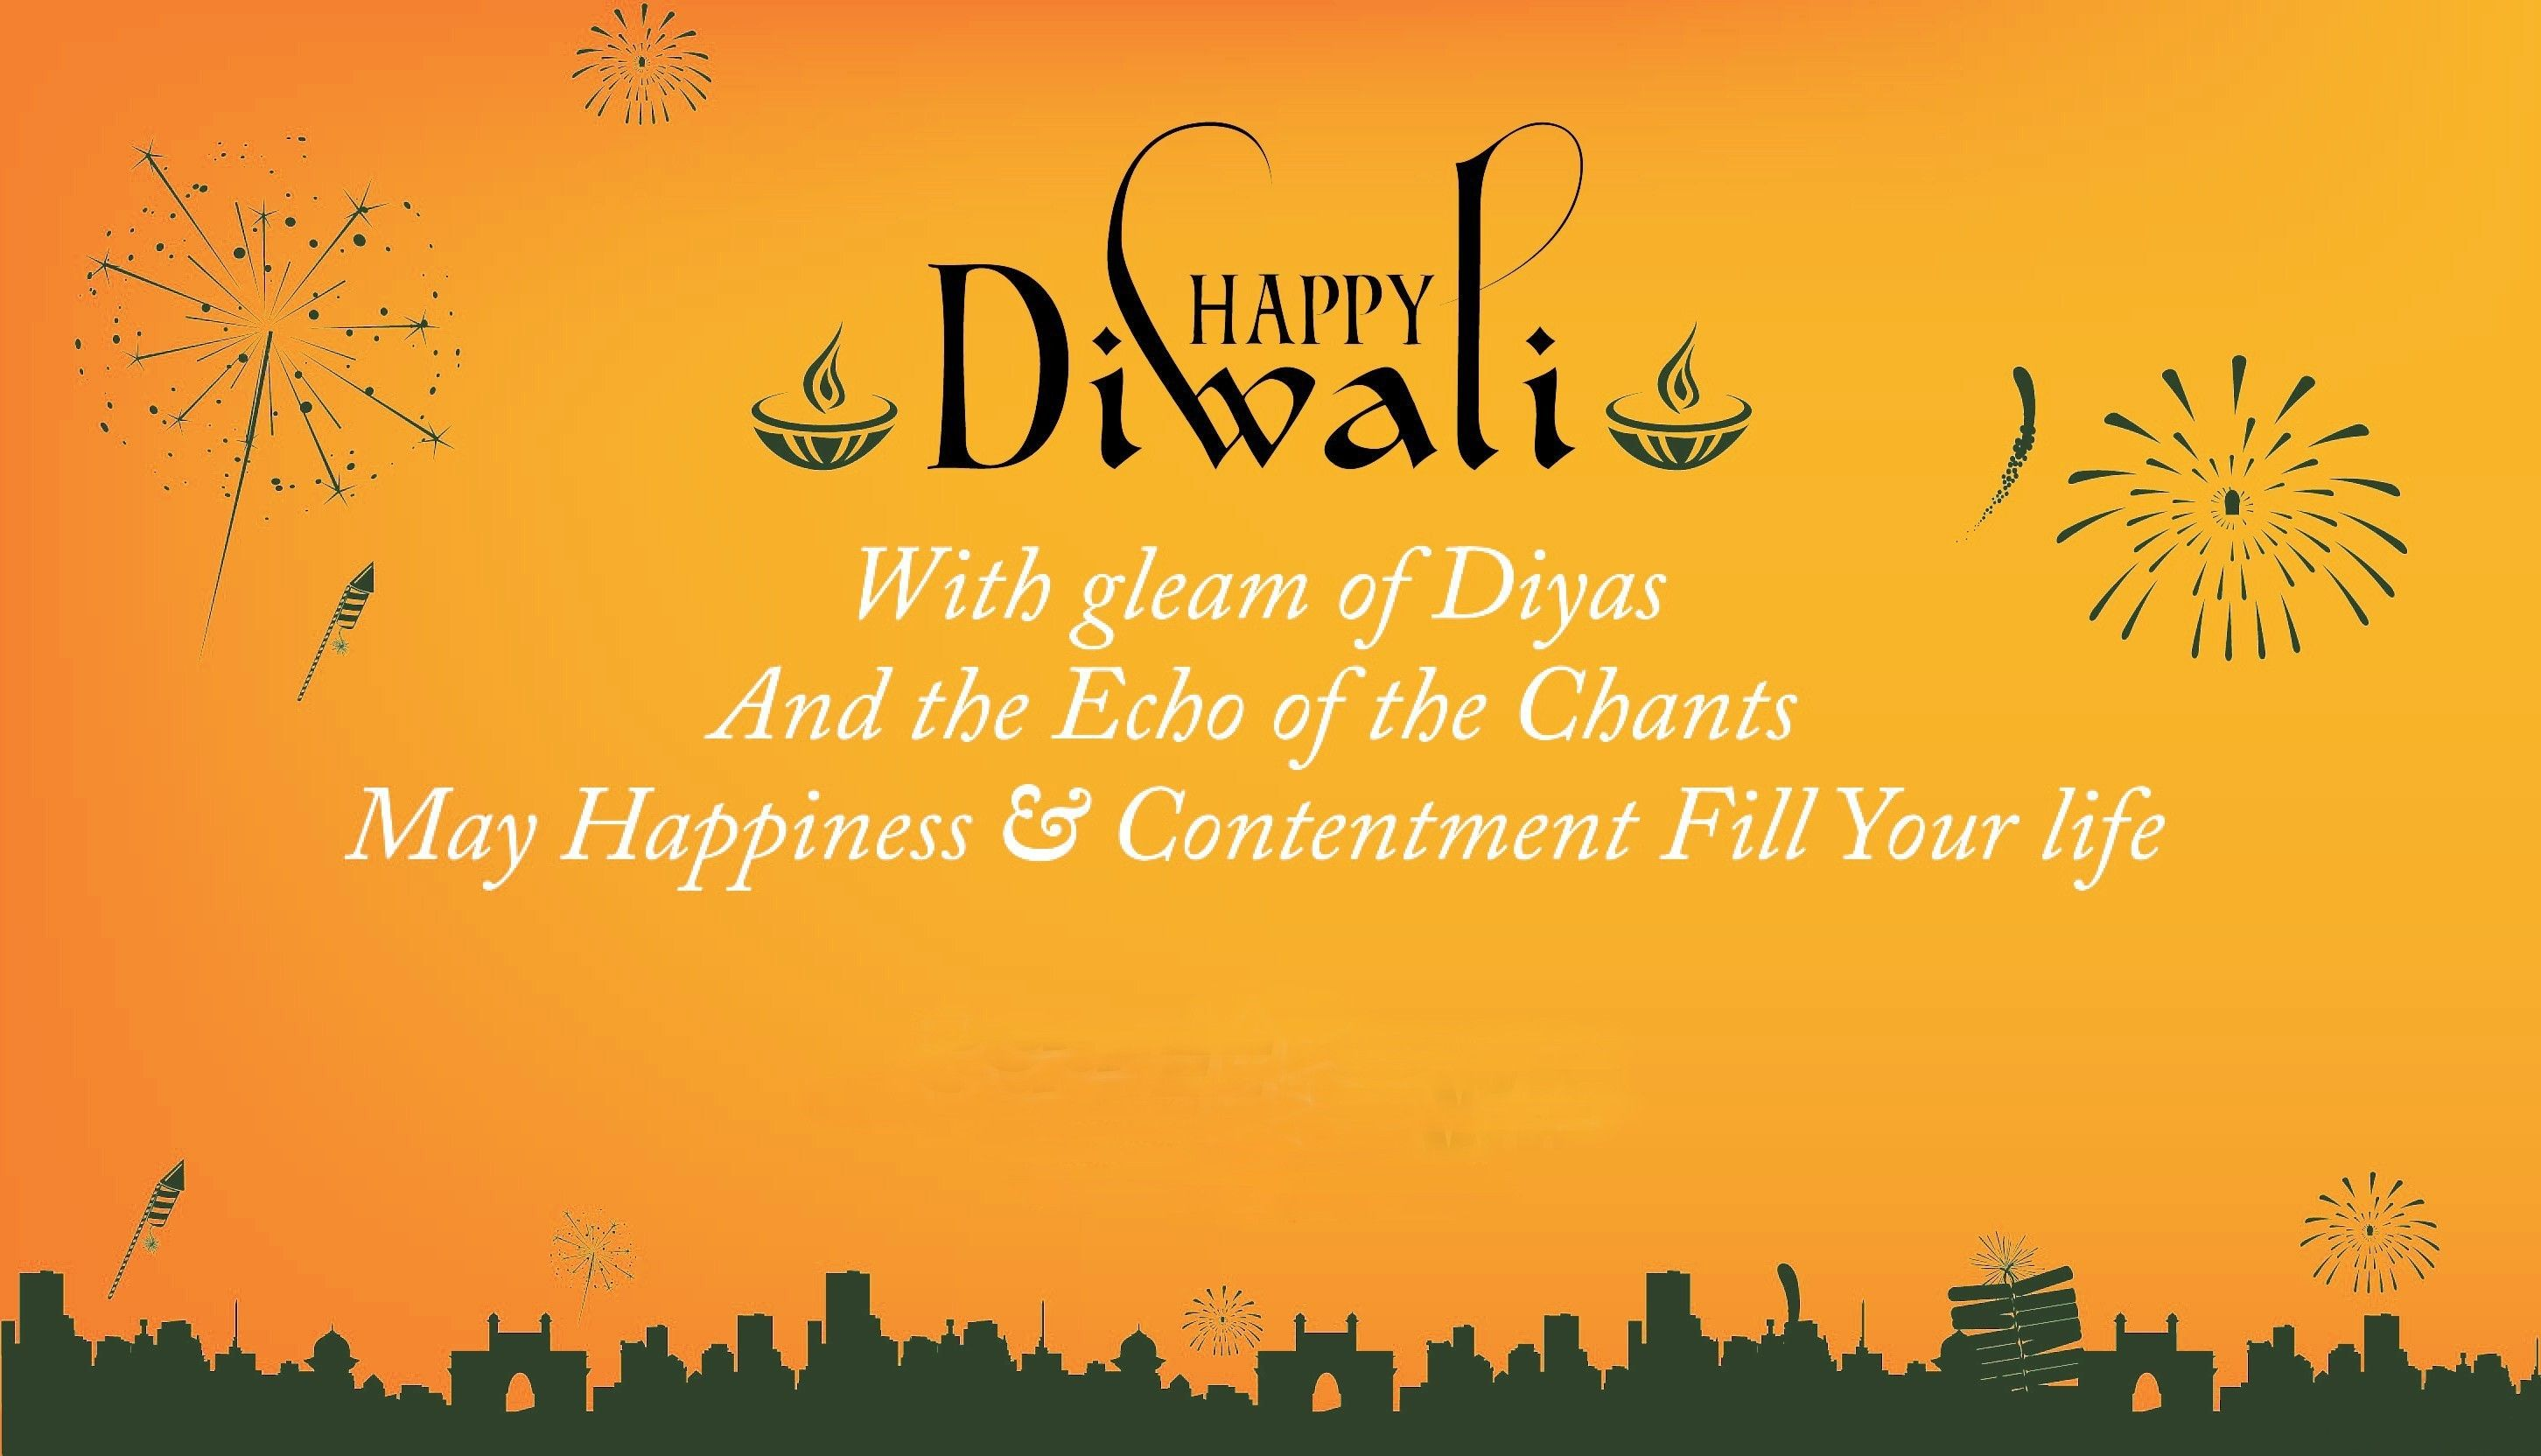 Download free happy diwali 2015 cards and greetings httpwww download free happy diwali 2015 cards and greetings httphappydiwali2udownload free happy diwali 2015 cards and greetings m4hsunfo